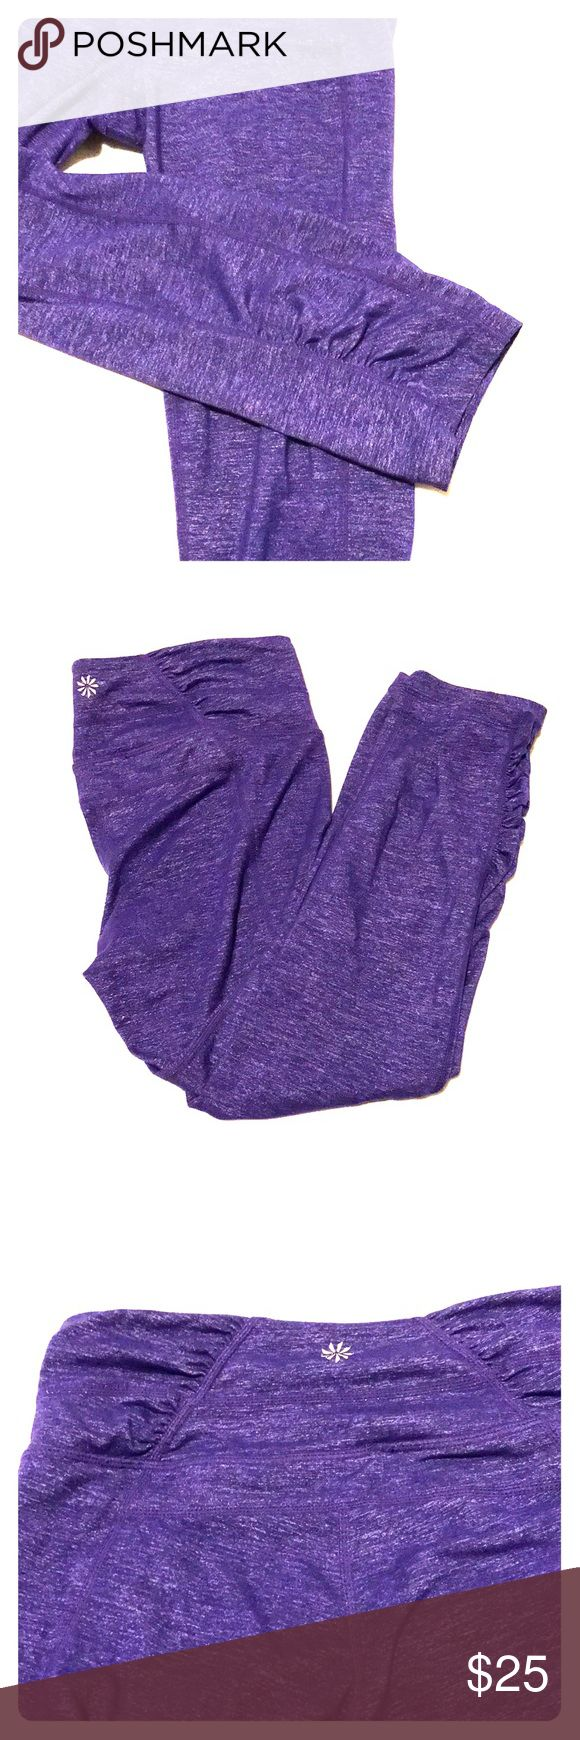 Cute Athleta tights! Dark bluish/purple heathered color with subtle metallic sheen (slimming!).  Cute gathered sections at back (either side of athleta symbol) and on lower part (hem) of the side panels.  3/4 length.  Medium rise.  Very comfortable.  Lots of stretch.  Very good used condition.  A few loose threads and mild wear but they look great!  The girl behind you in yoga won't notice a thing☺️.  Great for walking, running, yoga, spinning, barre, dance or just lounging around!  Style…